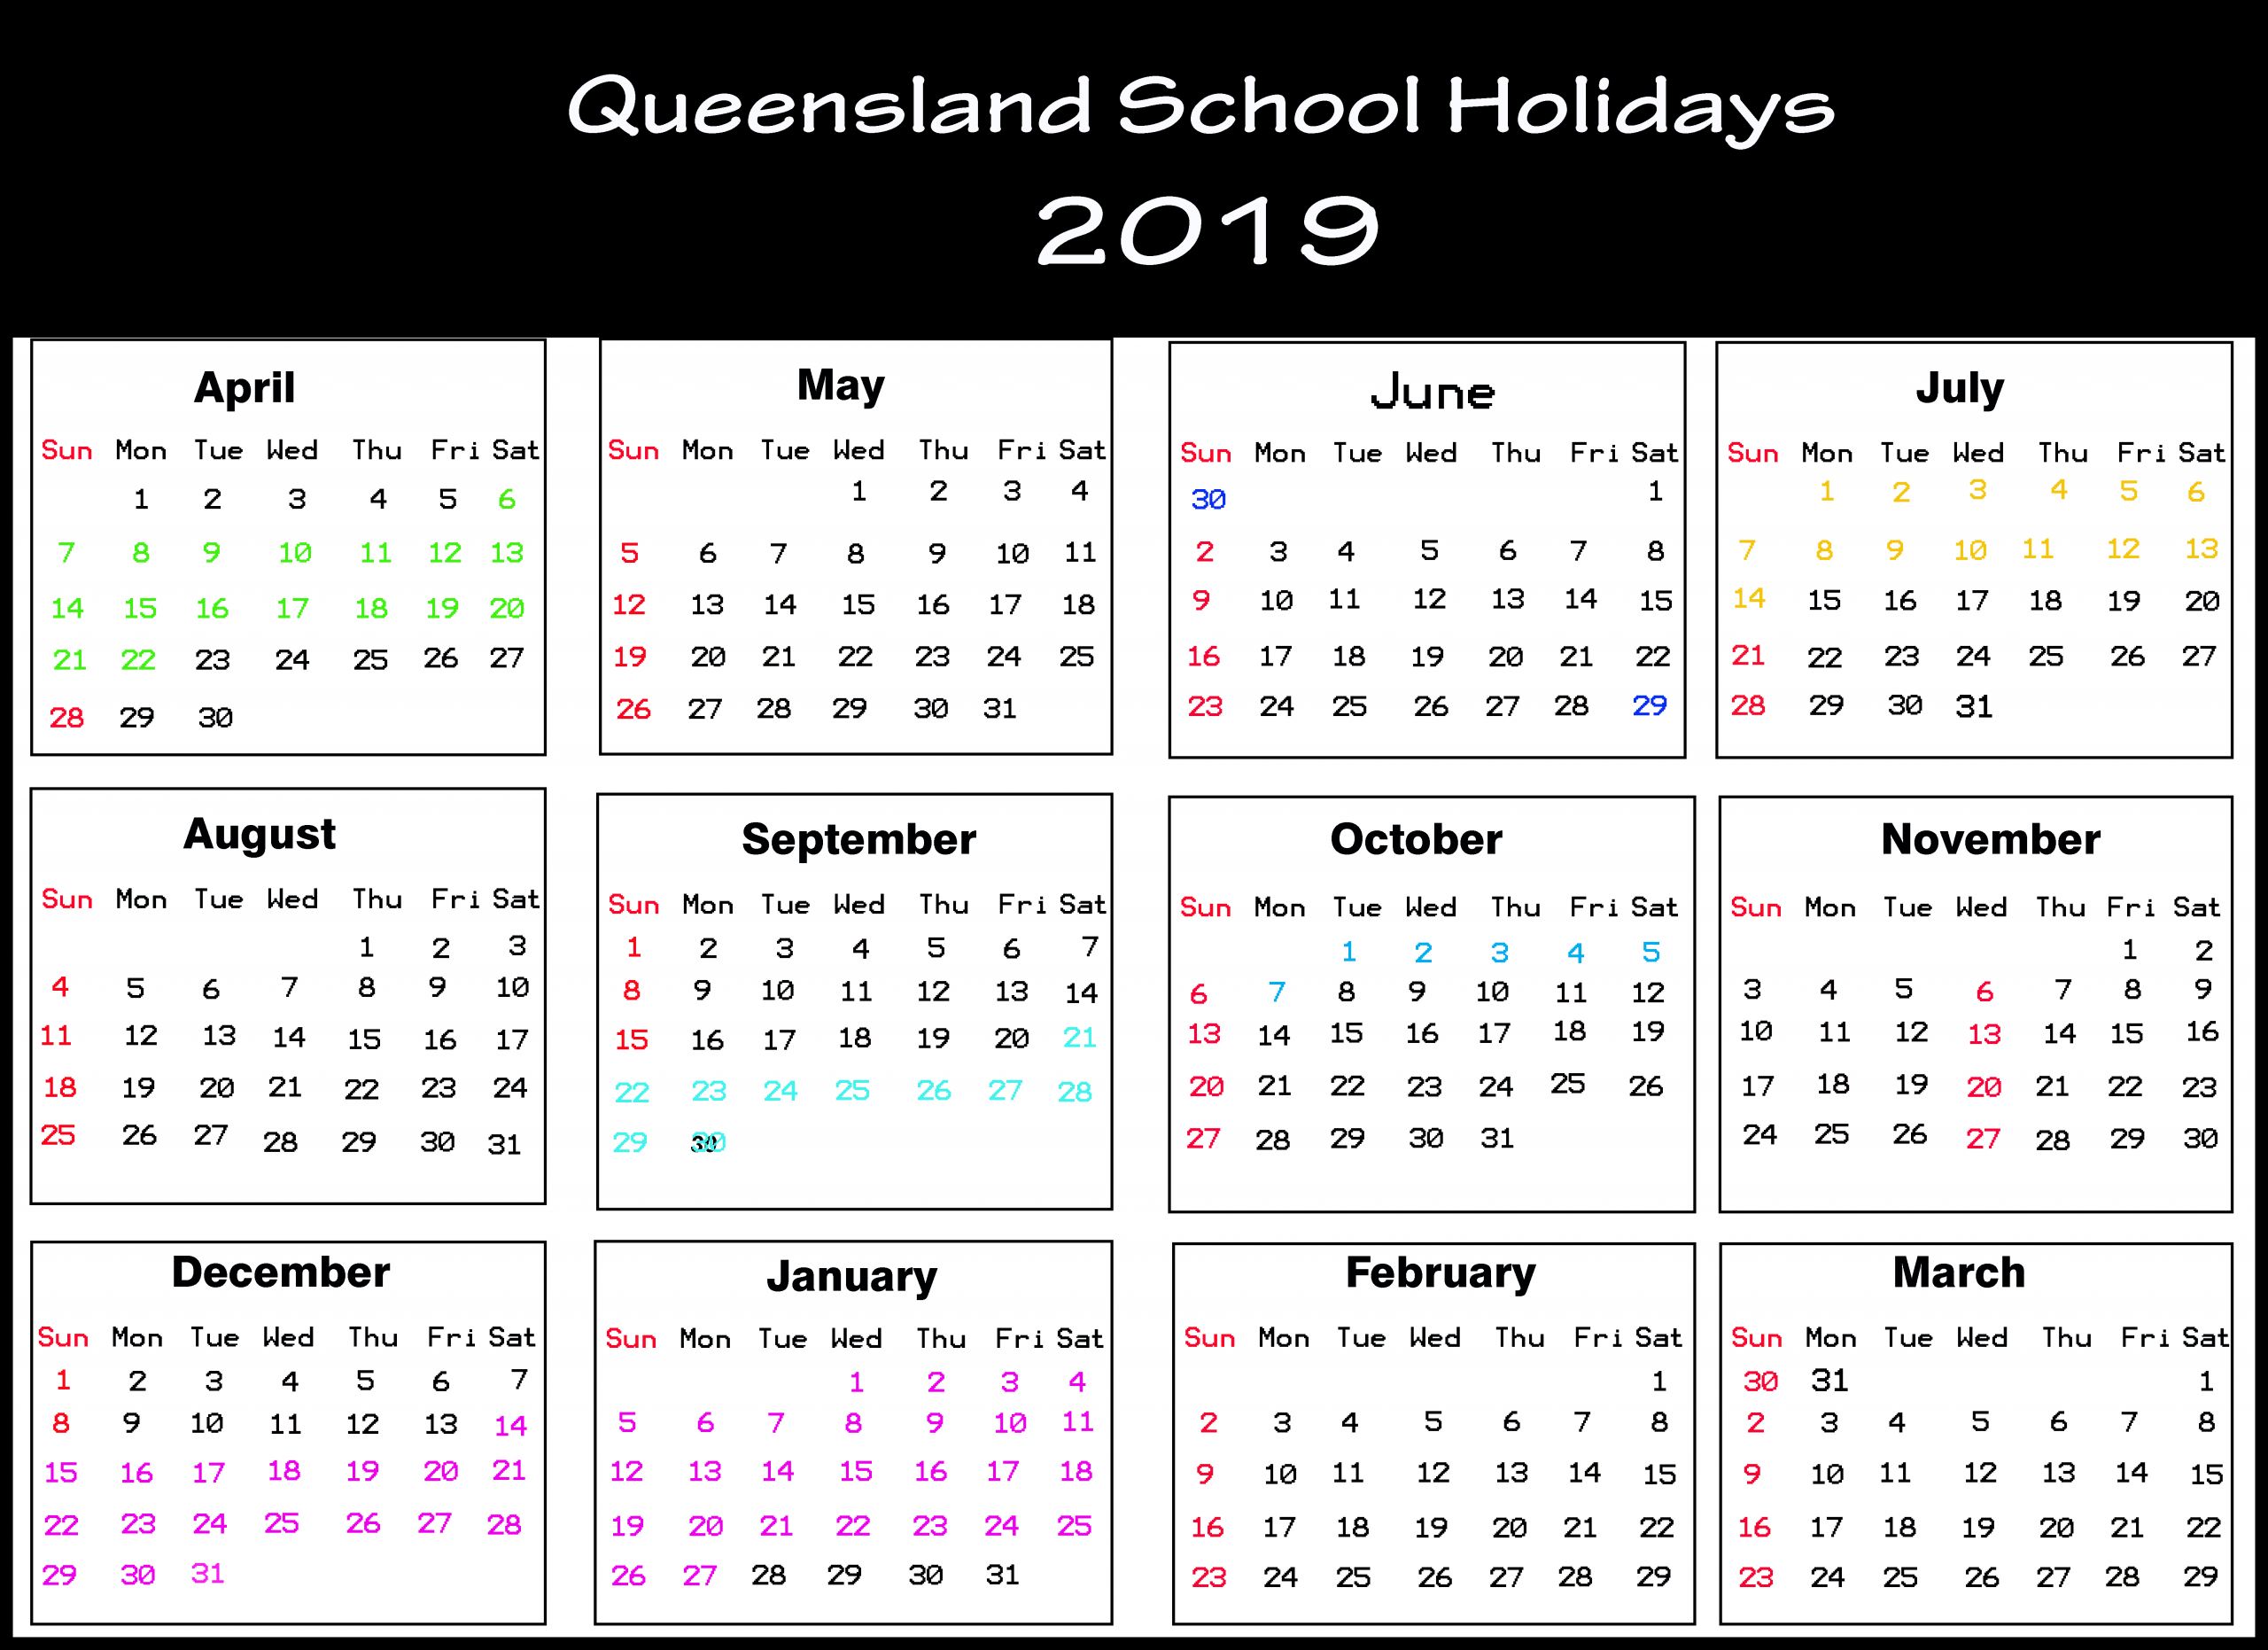 Qld School Calendar 2019 | Queensland (Qld) School Holidays